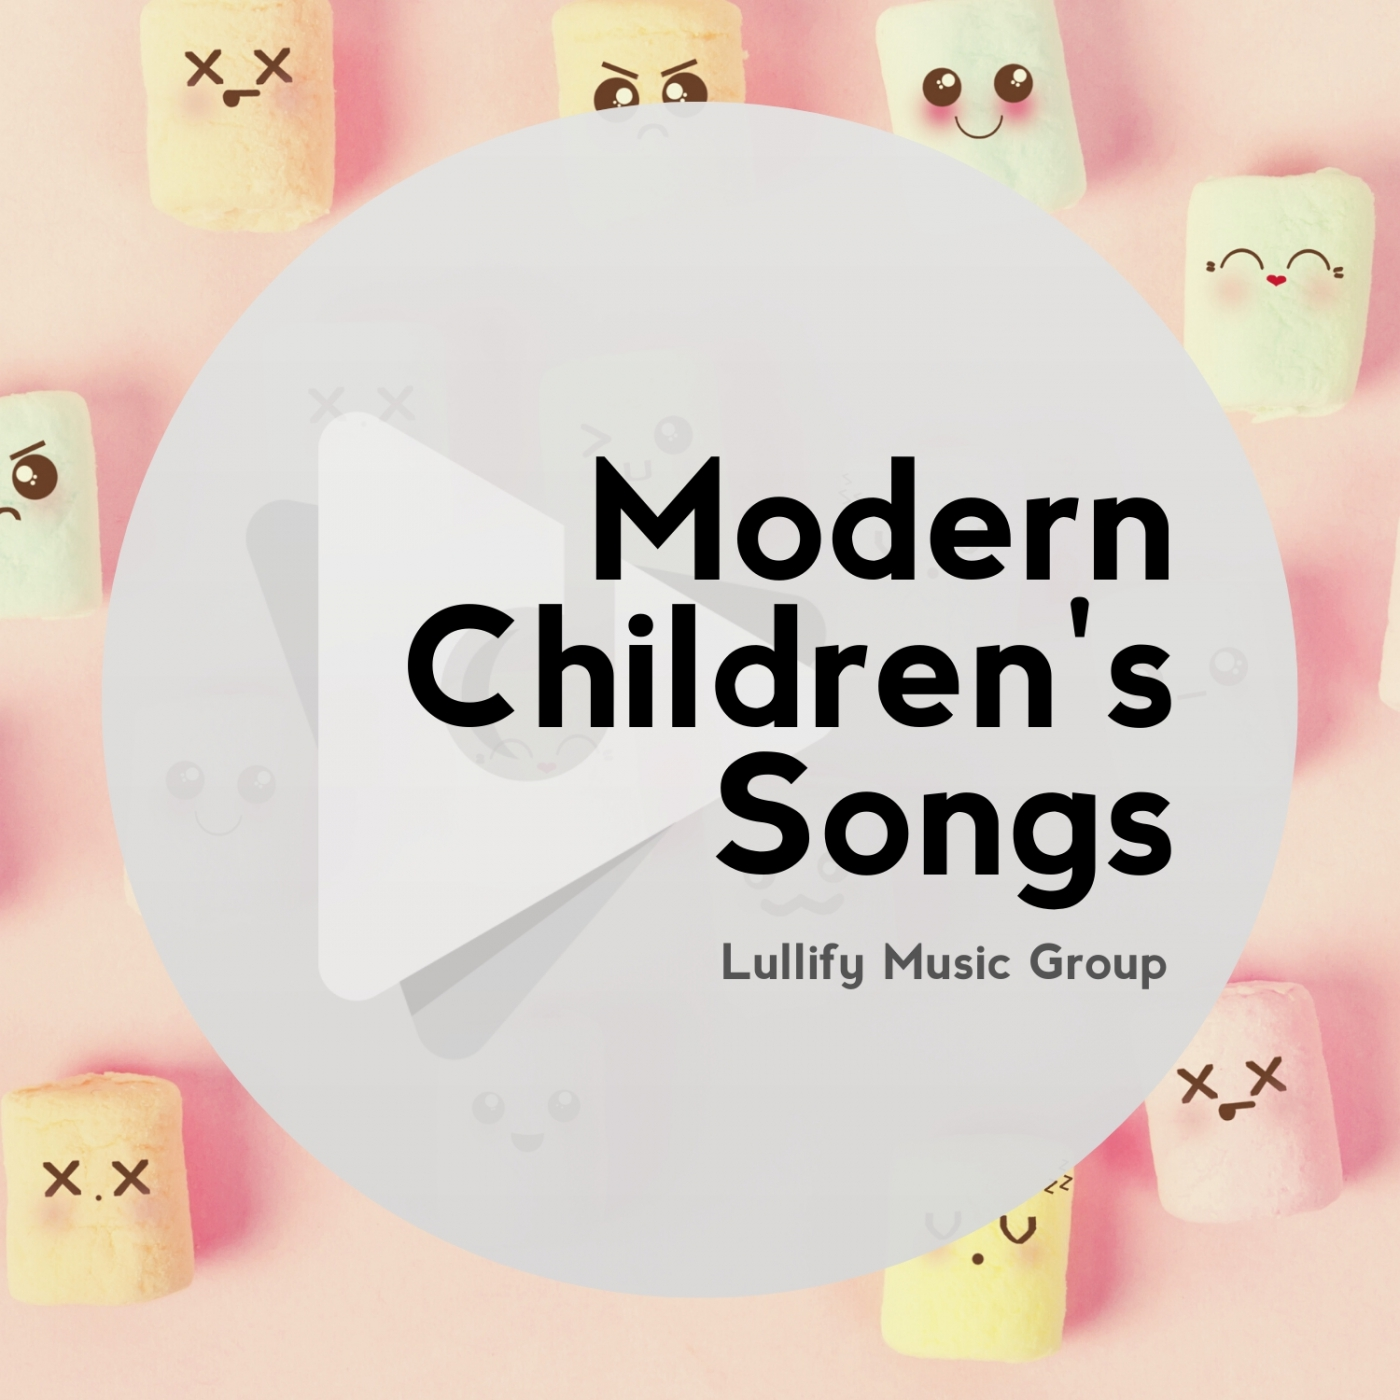 Modern Children's Songs